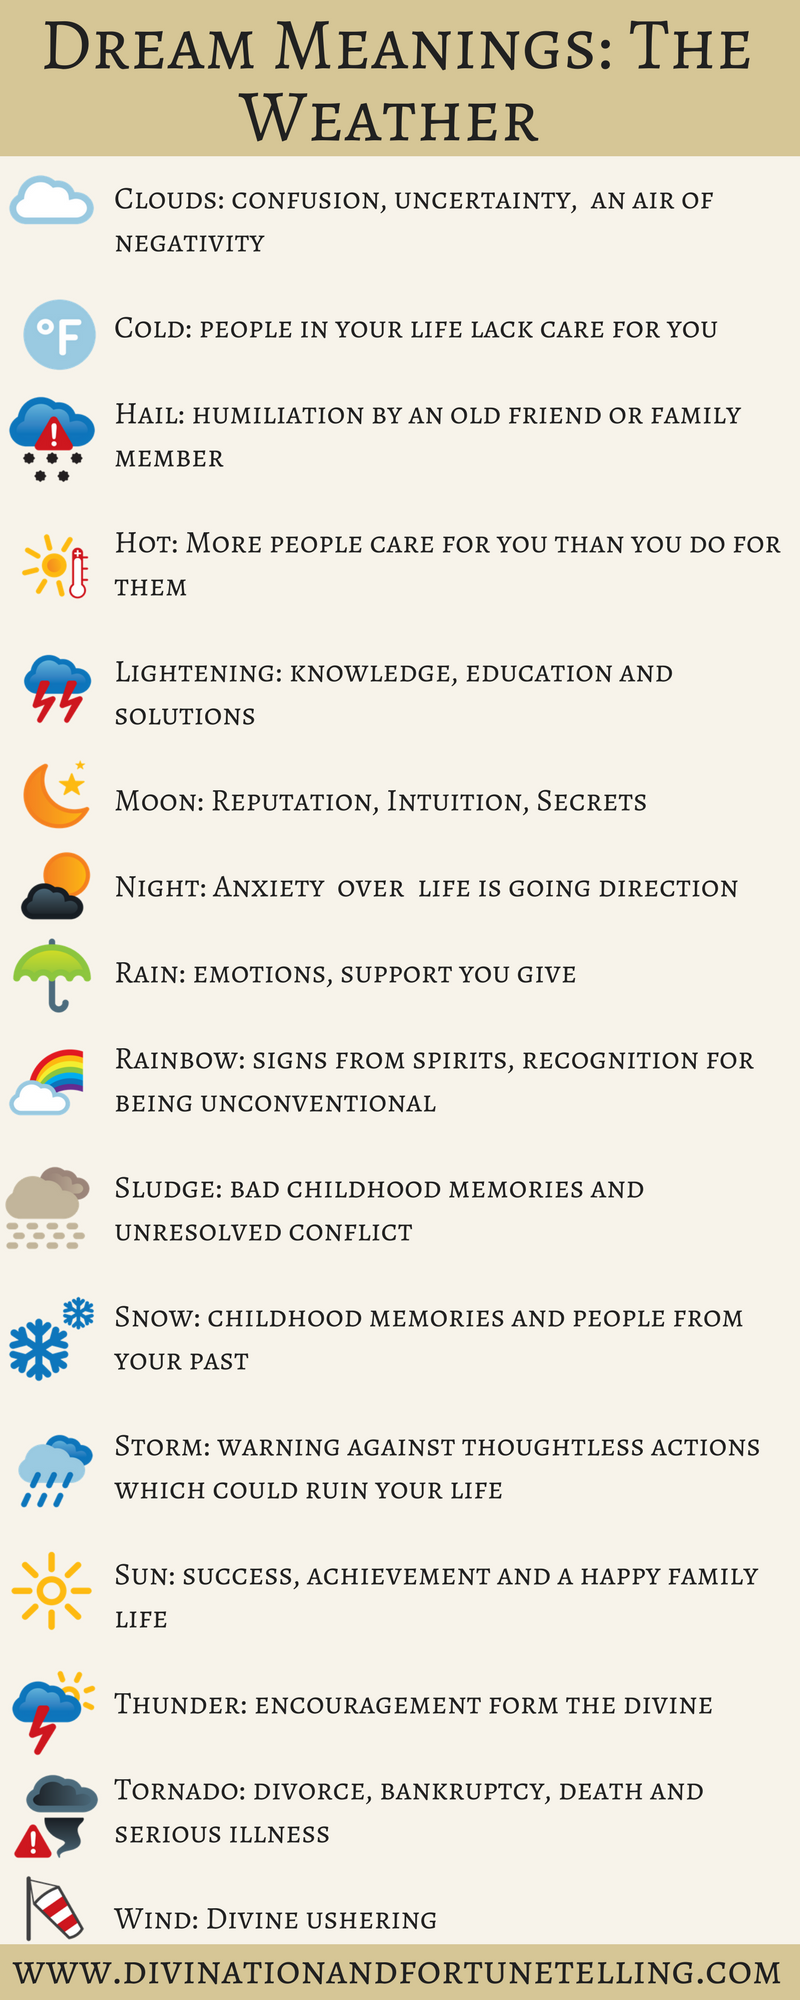 Weather Dream Meanings And Symbols Lisa Boswell